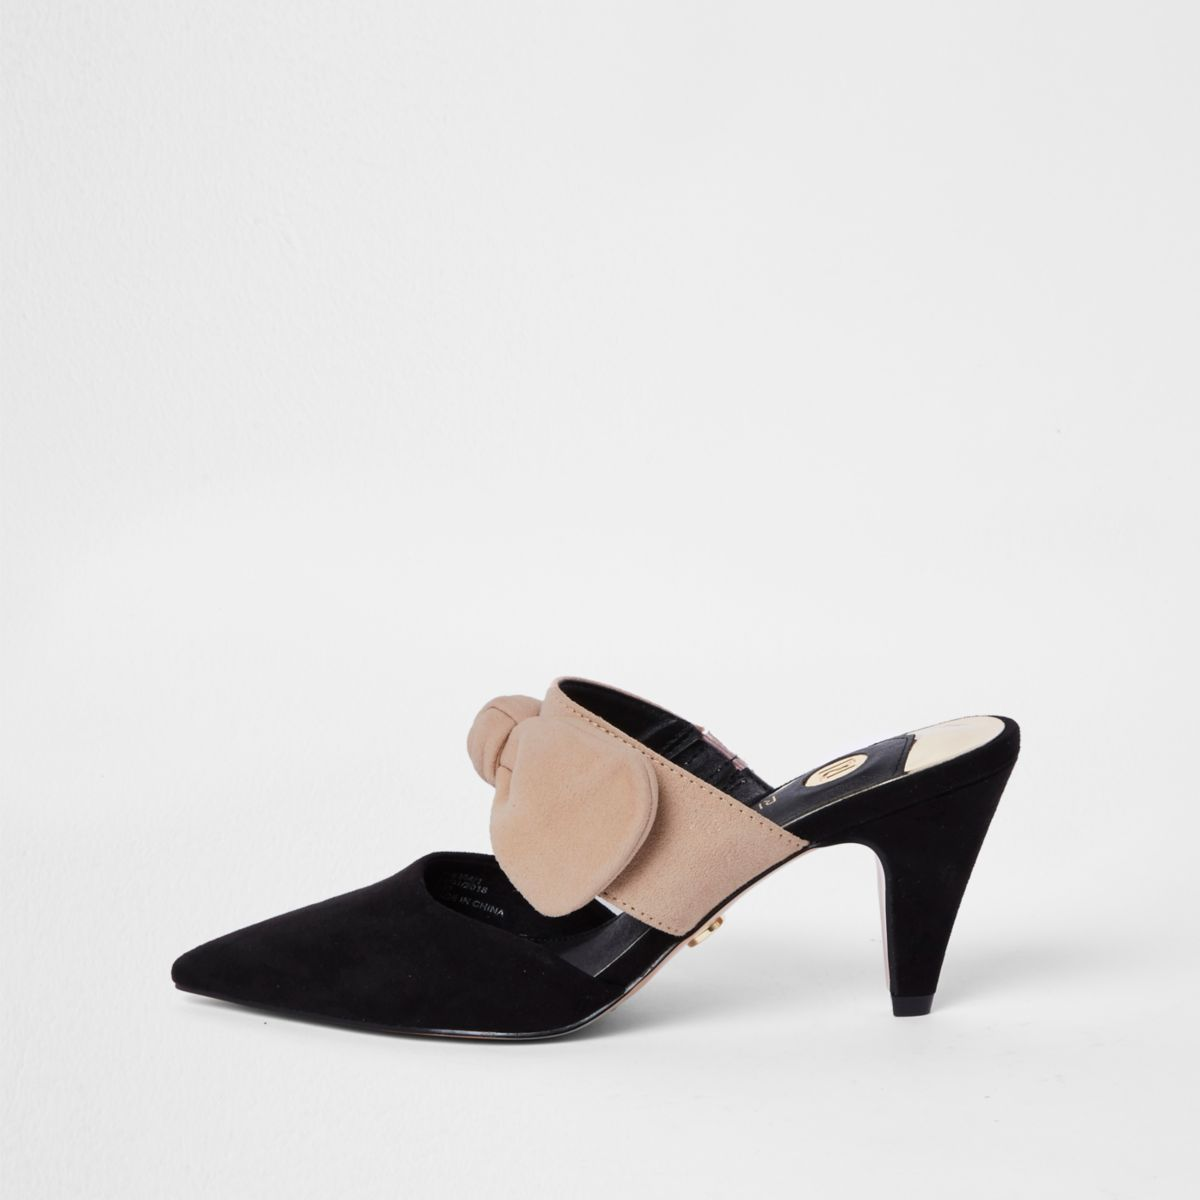 Black suede bow court style mules